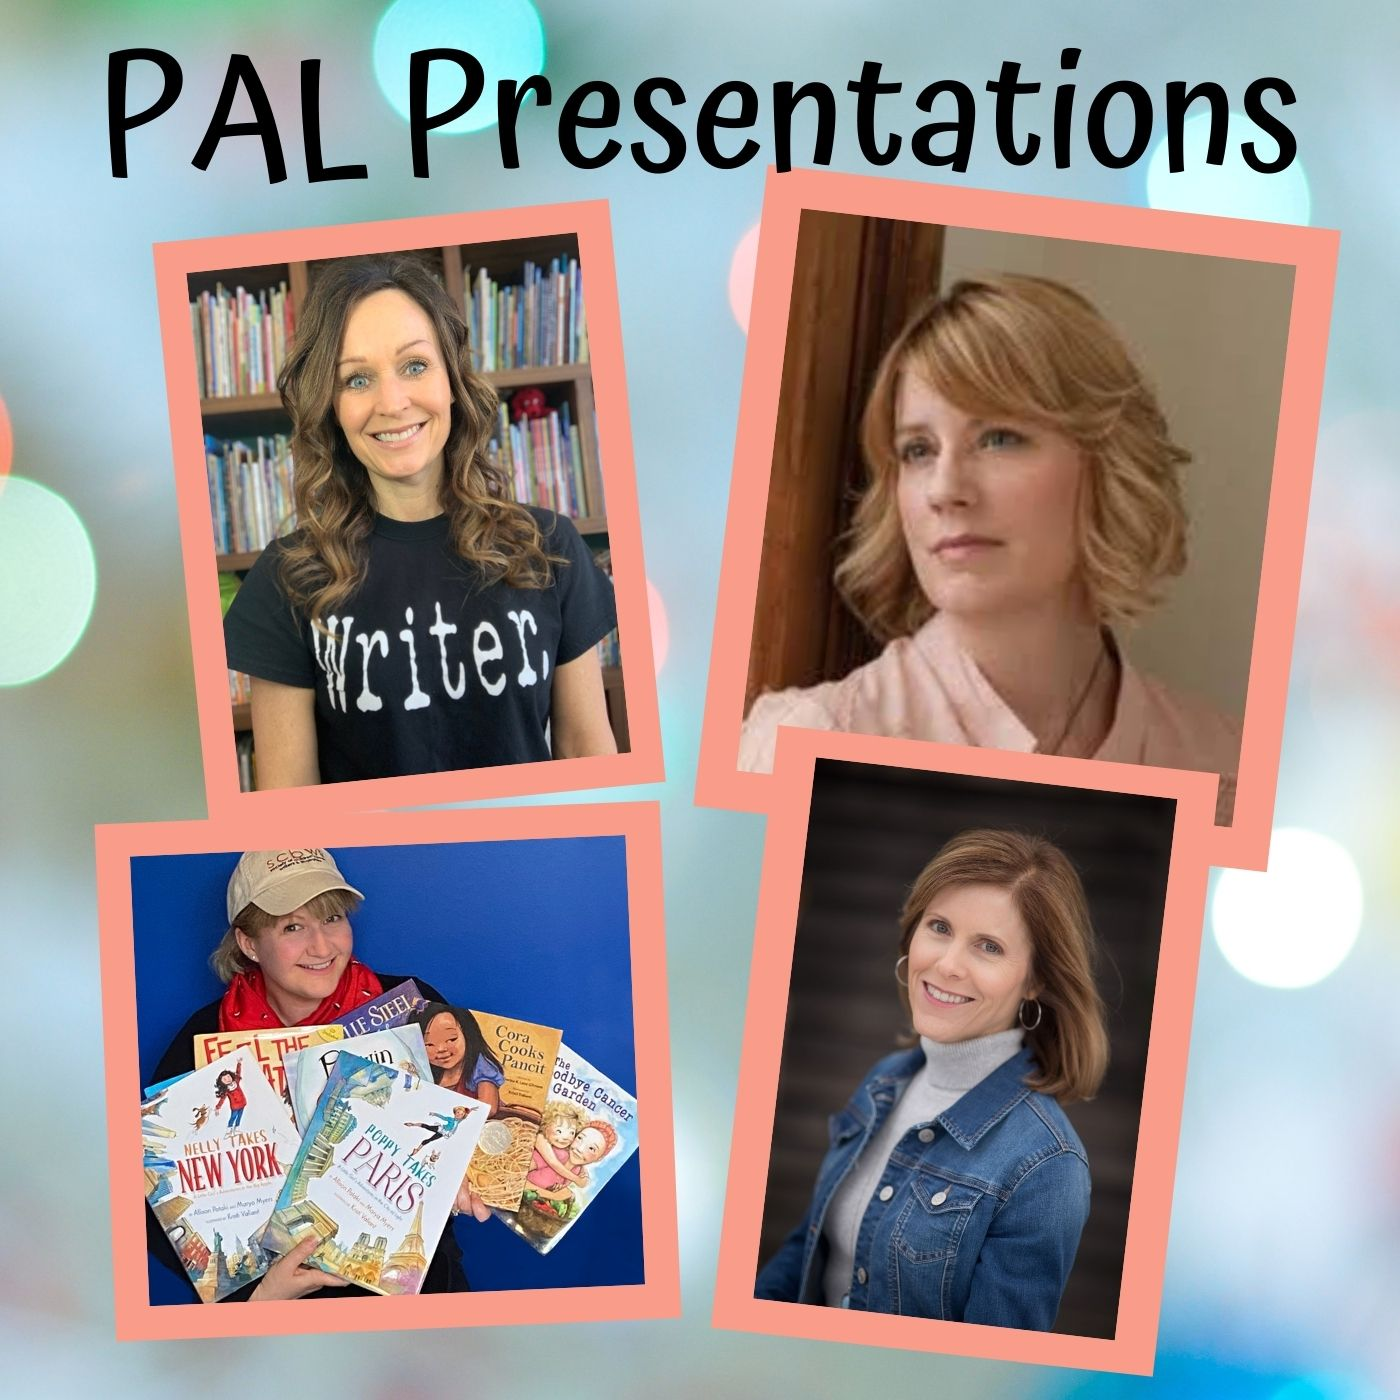 Our talented group of PAL authors and author-illustrator will be giving virtual talks in 2021. Check them out and sign up: Shannon Anderson - February 6, 2021 Kristi Valiant - July 17, 2021 Cindy Argentine - November 6, 2021 Sharon Biggs Waller